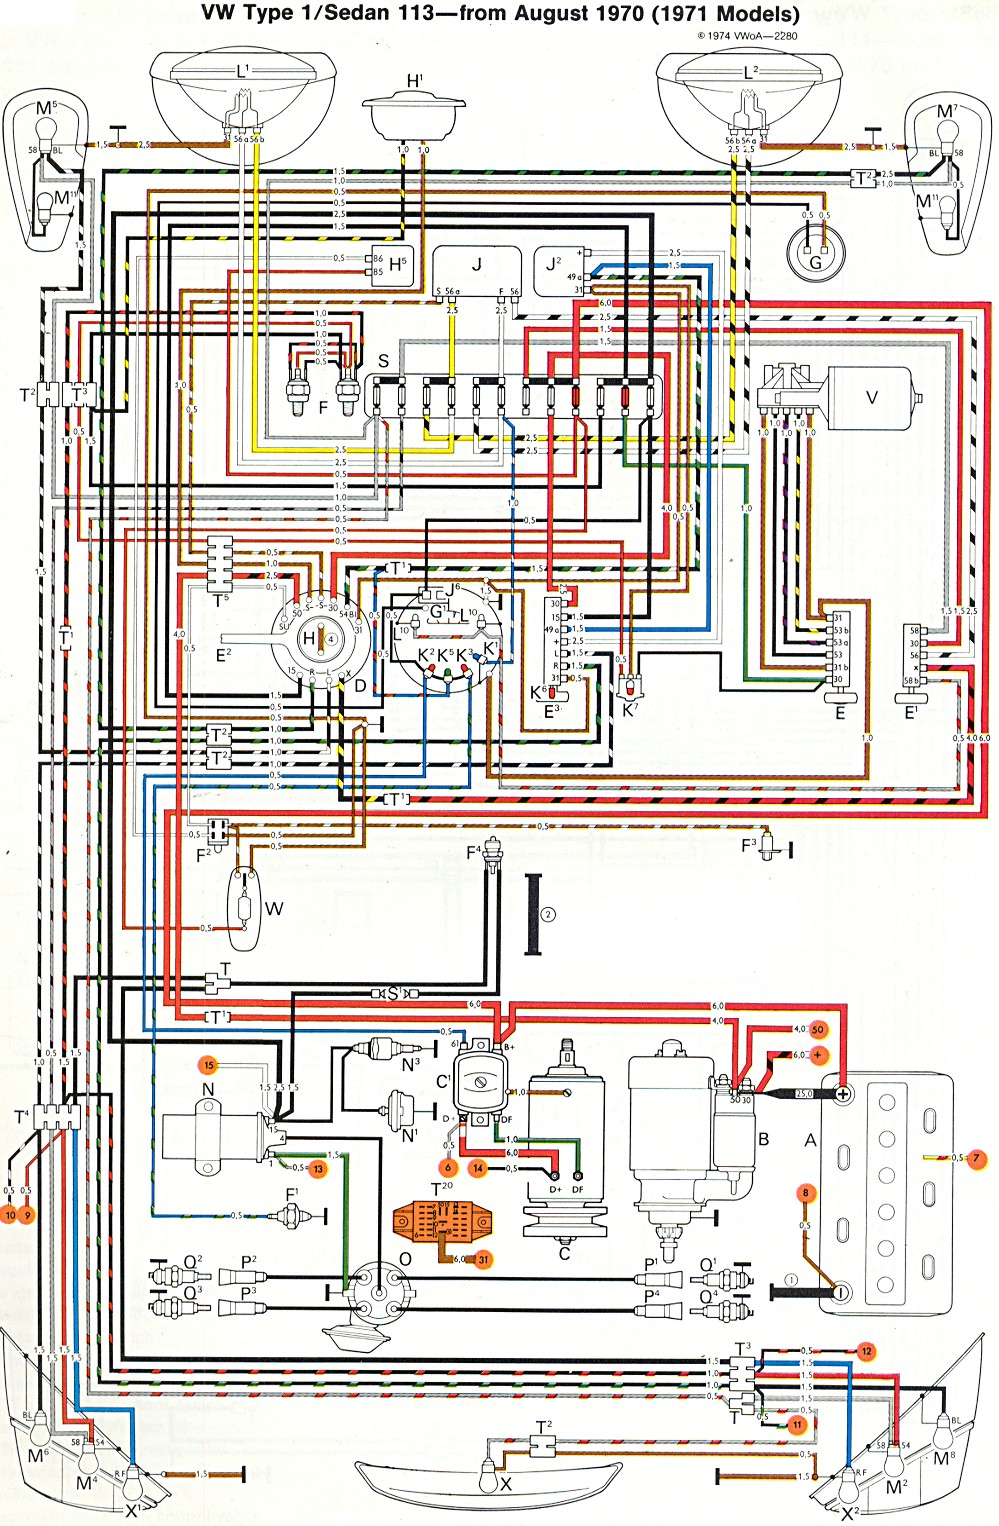 1974 Vw Alternator Wiring Diagram Will Be A Thing Volkswagen 71 Detailed Schematics Rh Keyplusrubber Com 74